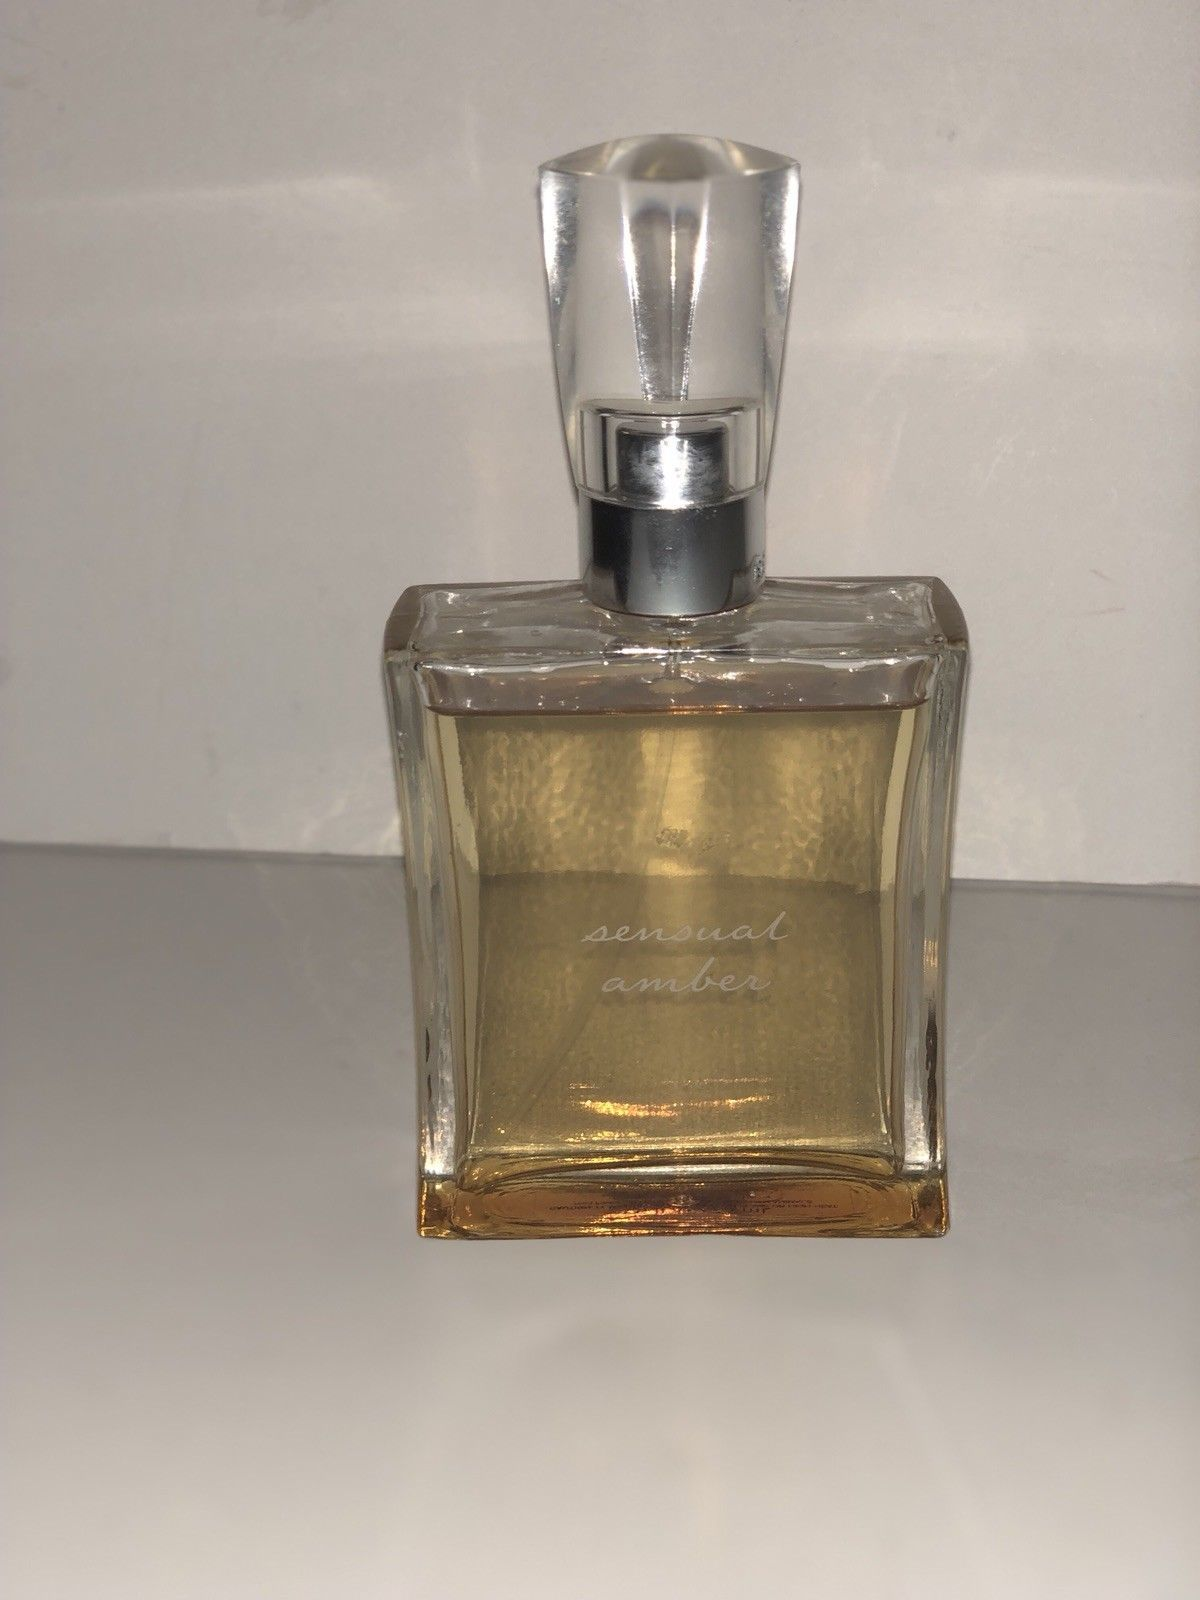 Bath & Body Works Sensual Amber * Eau de Toilette Perfume 2.5 FL OZ  3/4 FULL